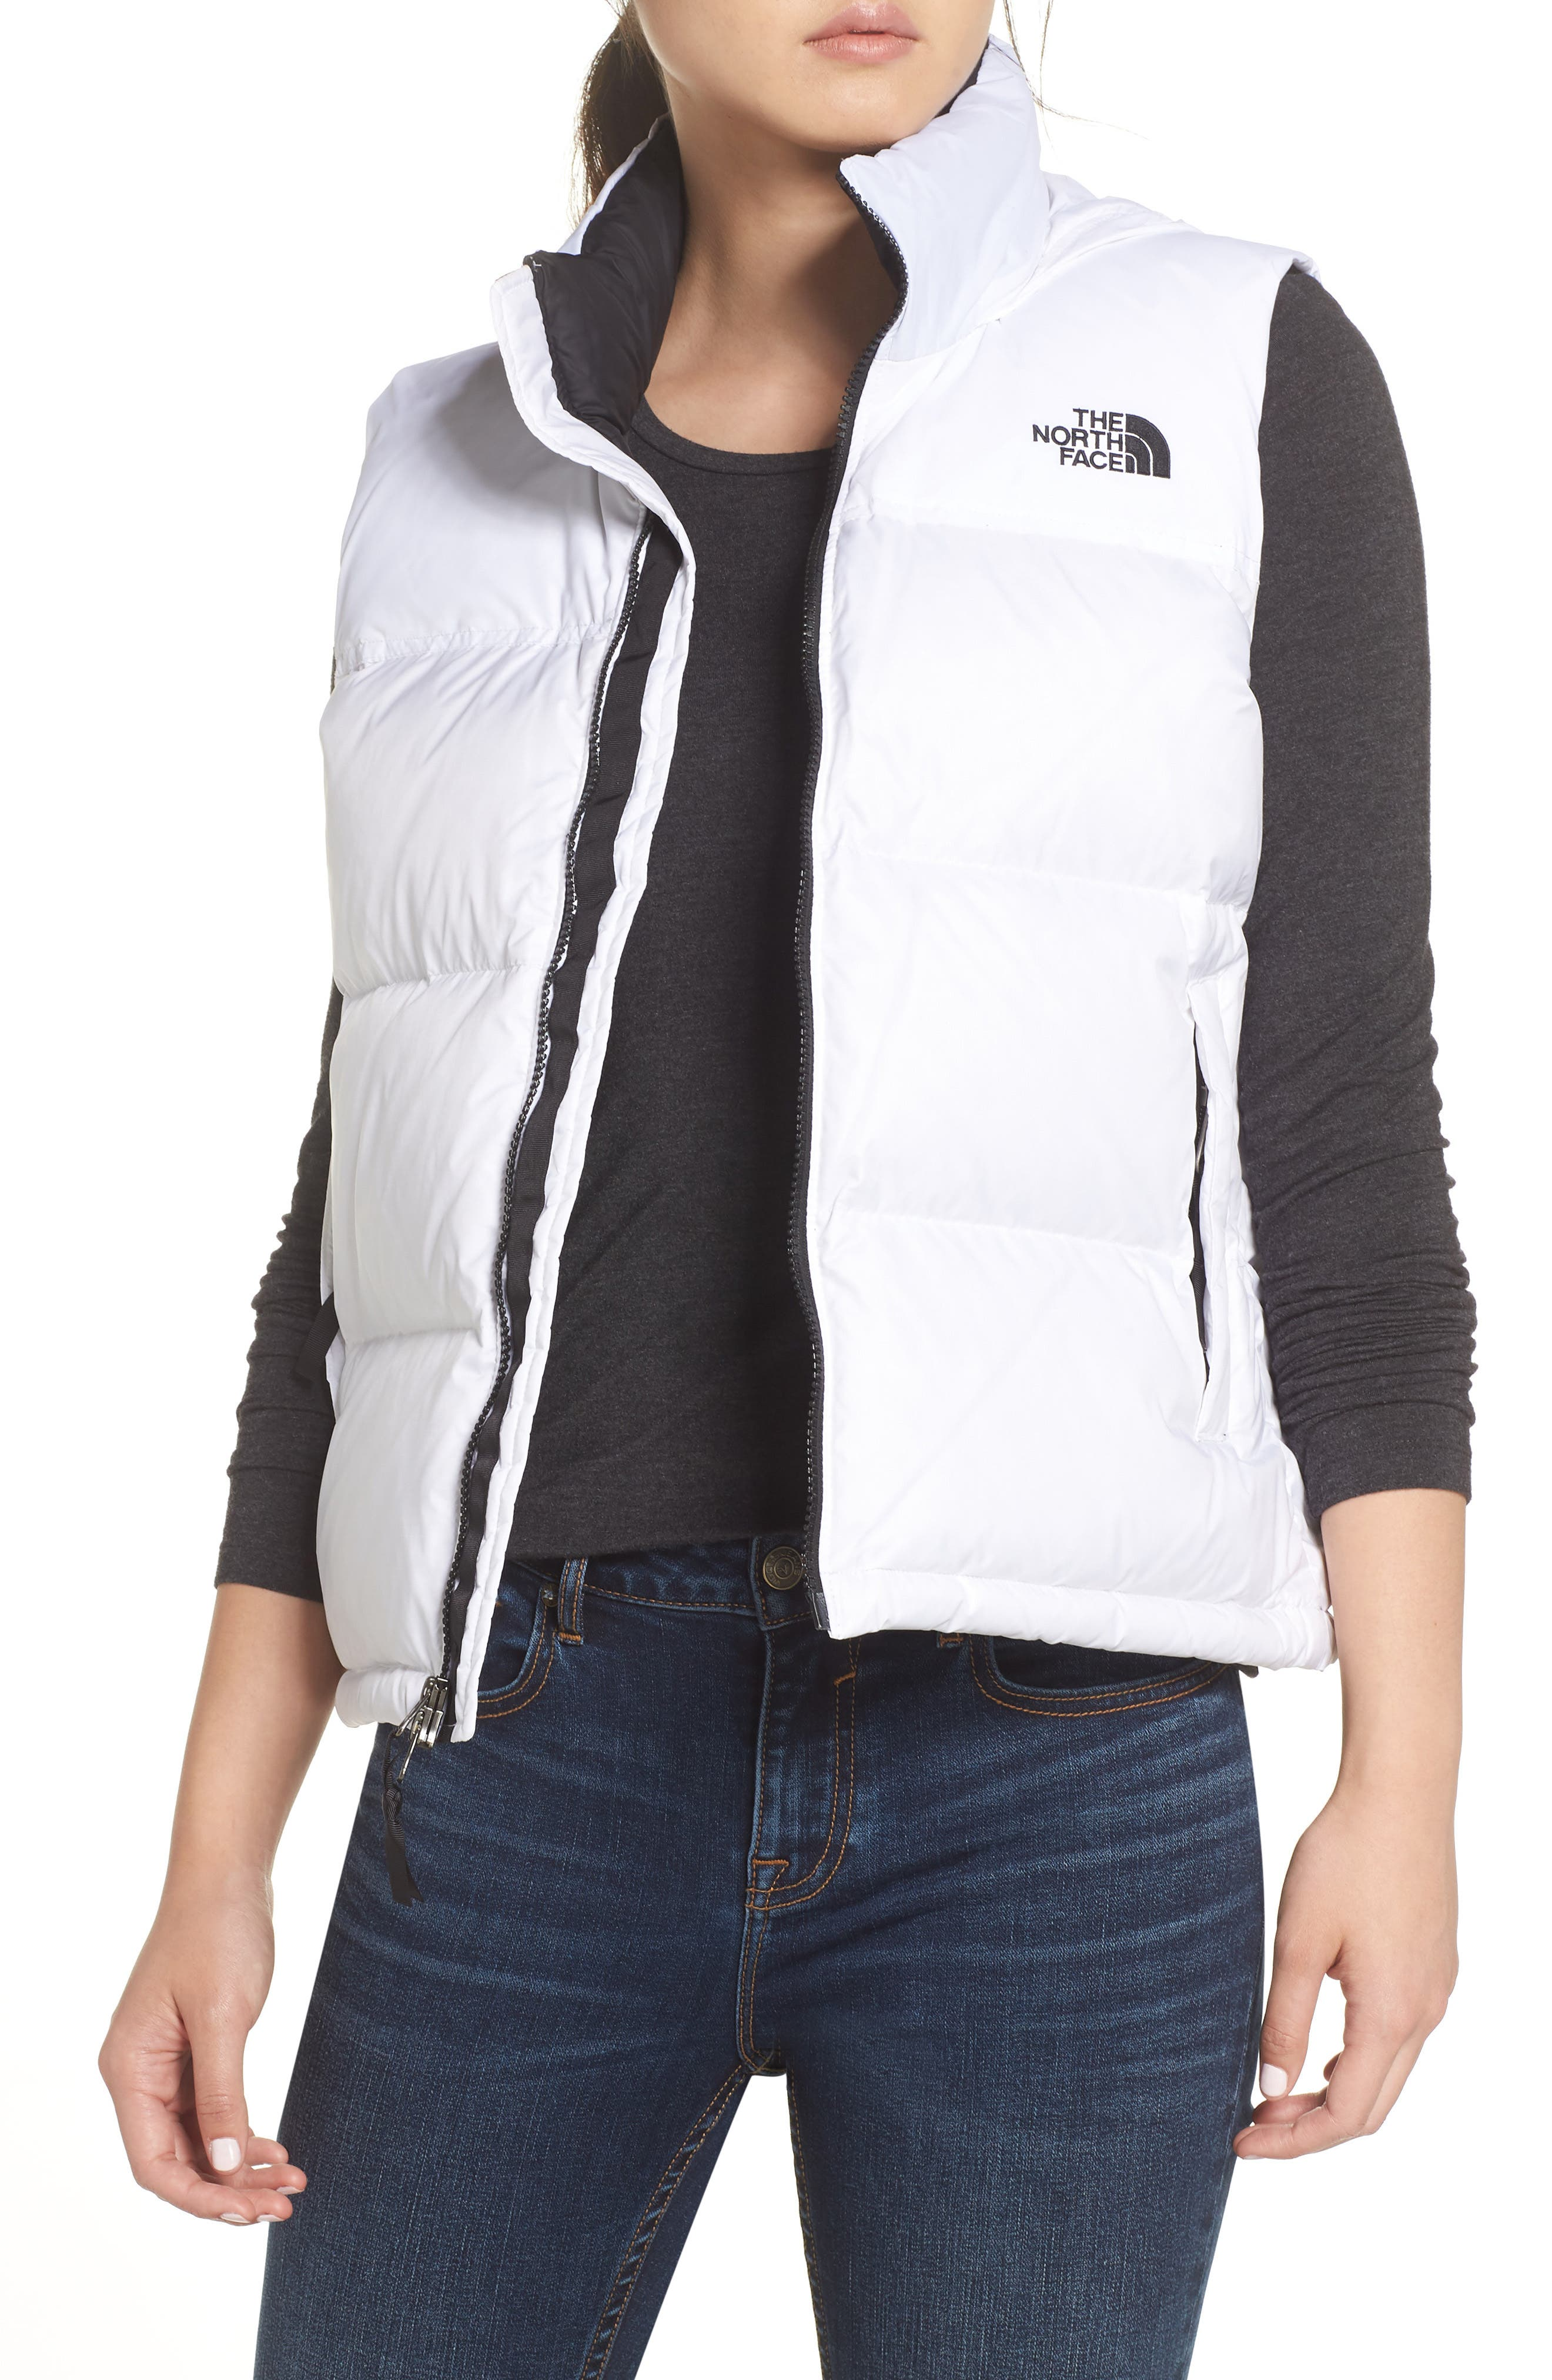 THE NORTH FACE,                             Nuptse 1996 Packable 700-Fill Power Down Vest,                             Main thumbnail 1, color,                             TNF WHITE